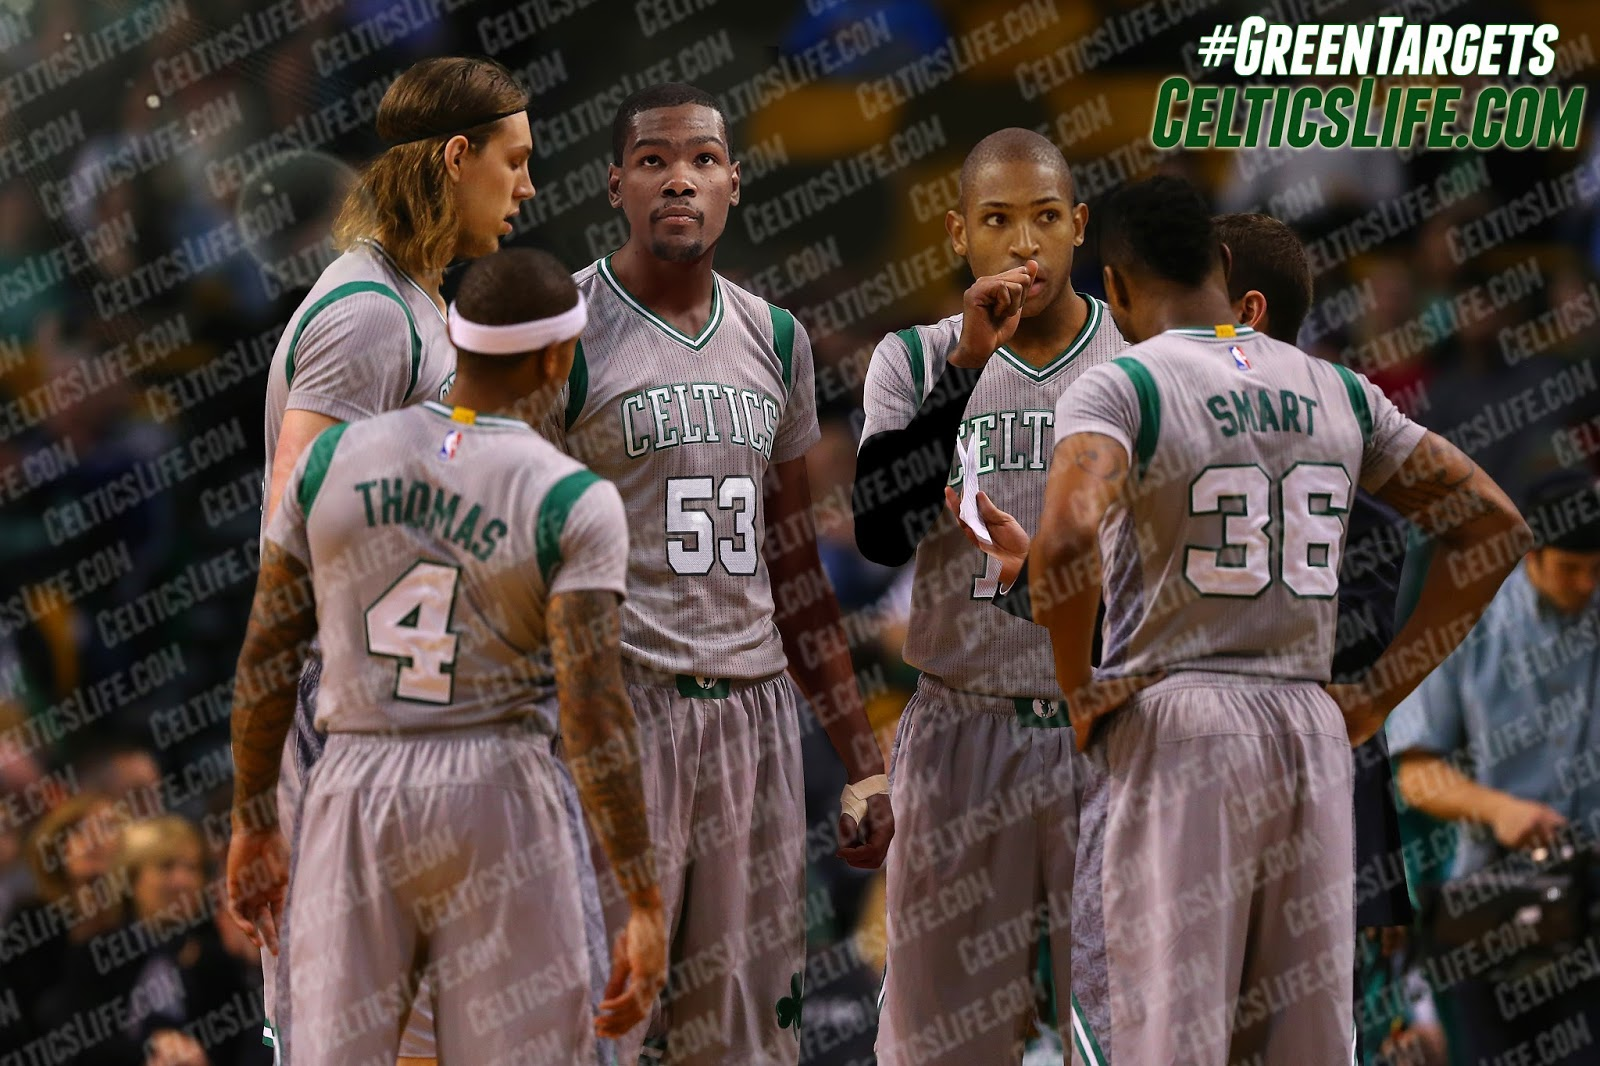 The passion of Celtics fans played a contributing role in ...